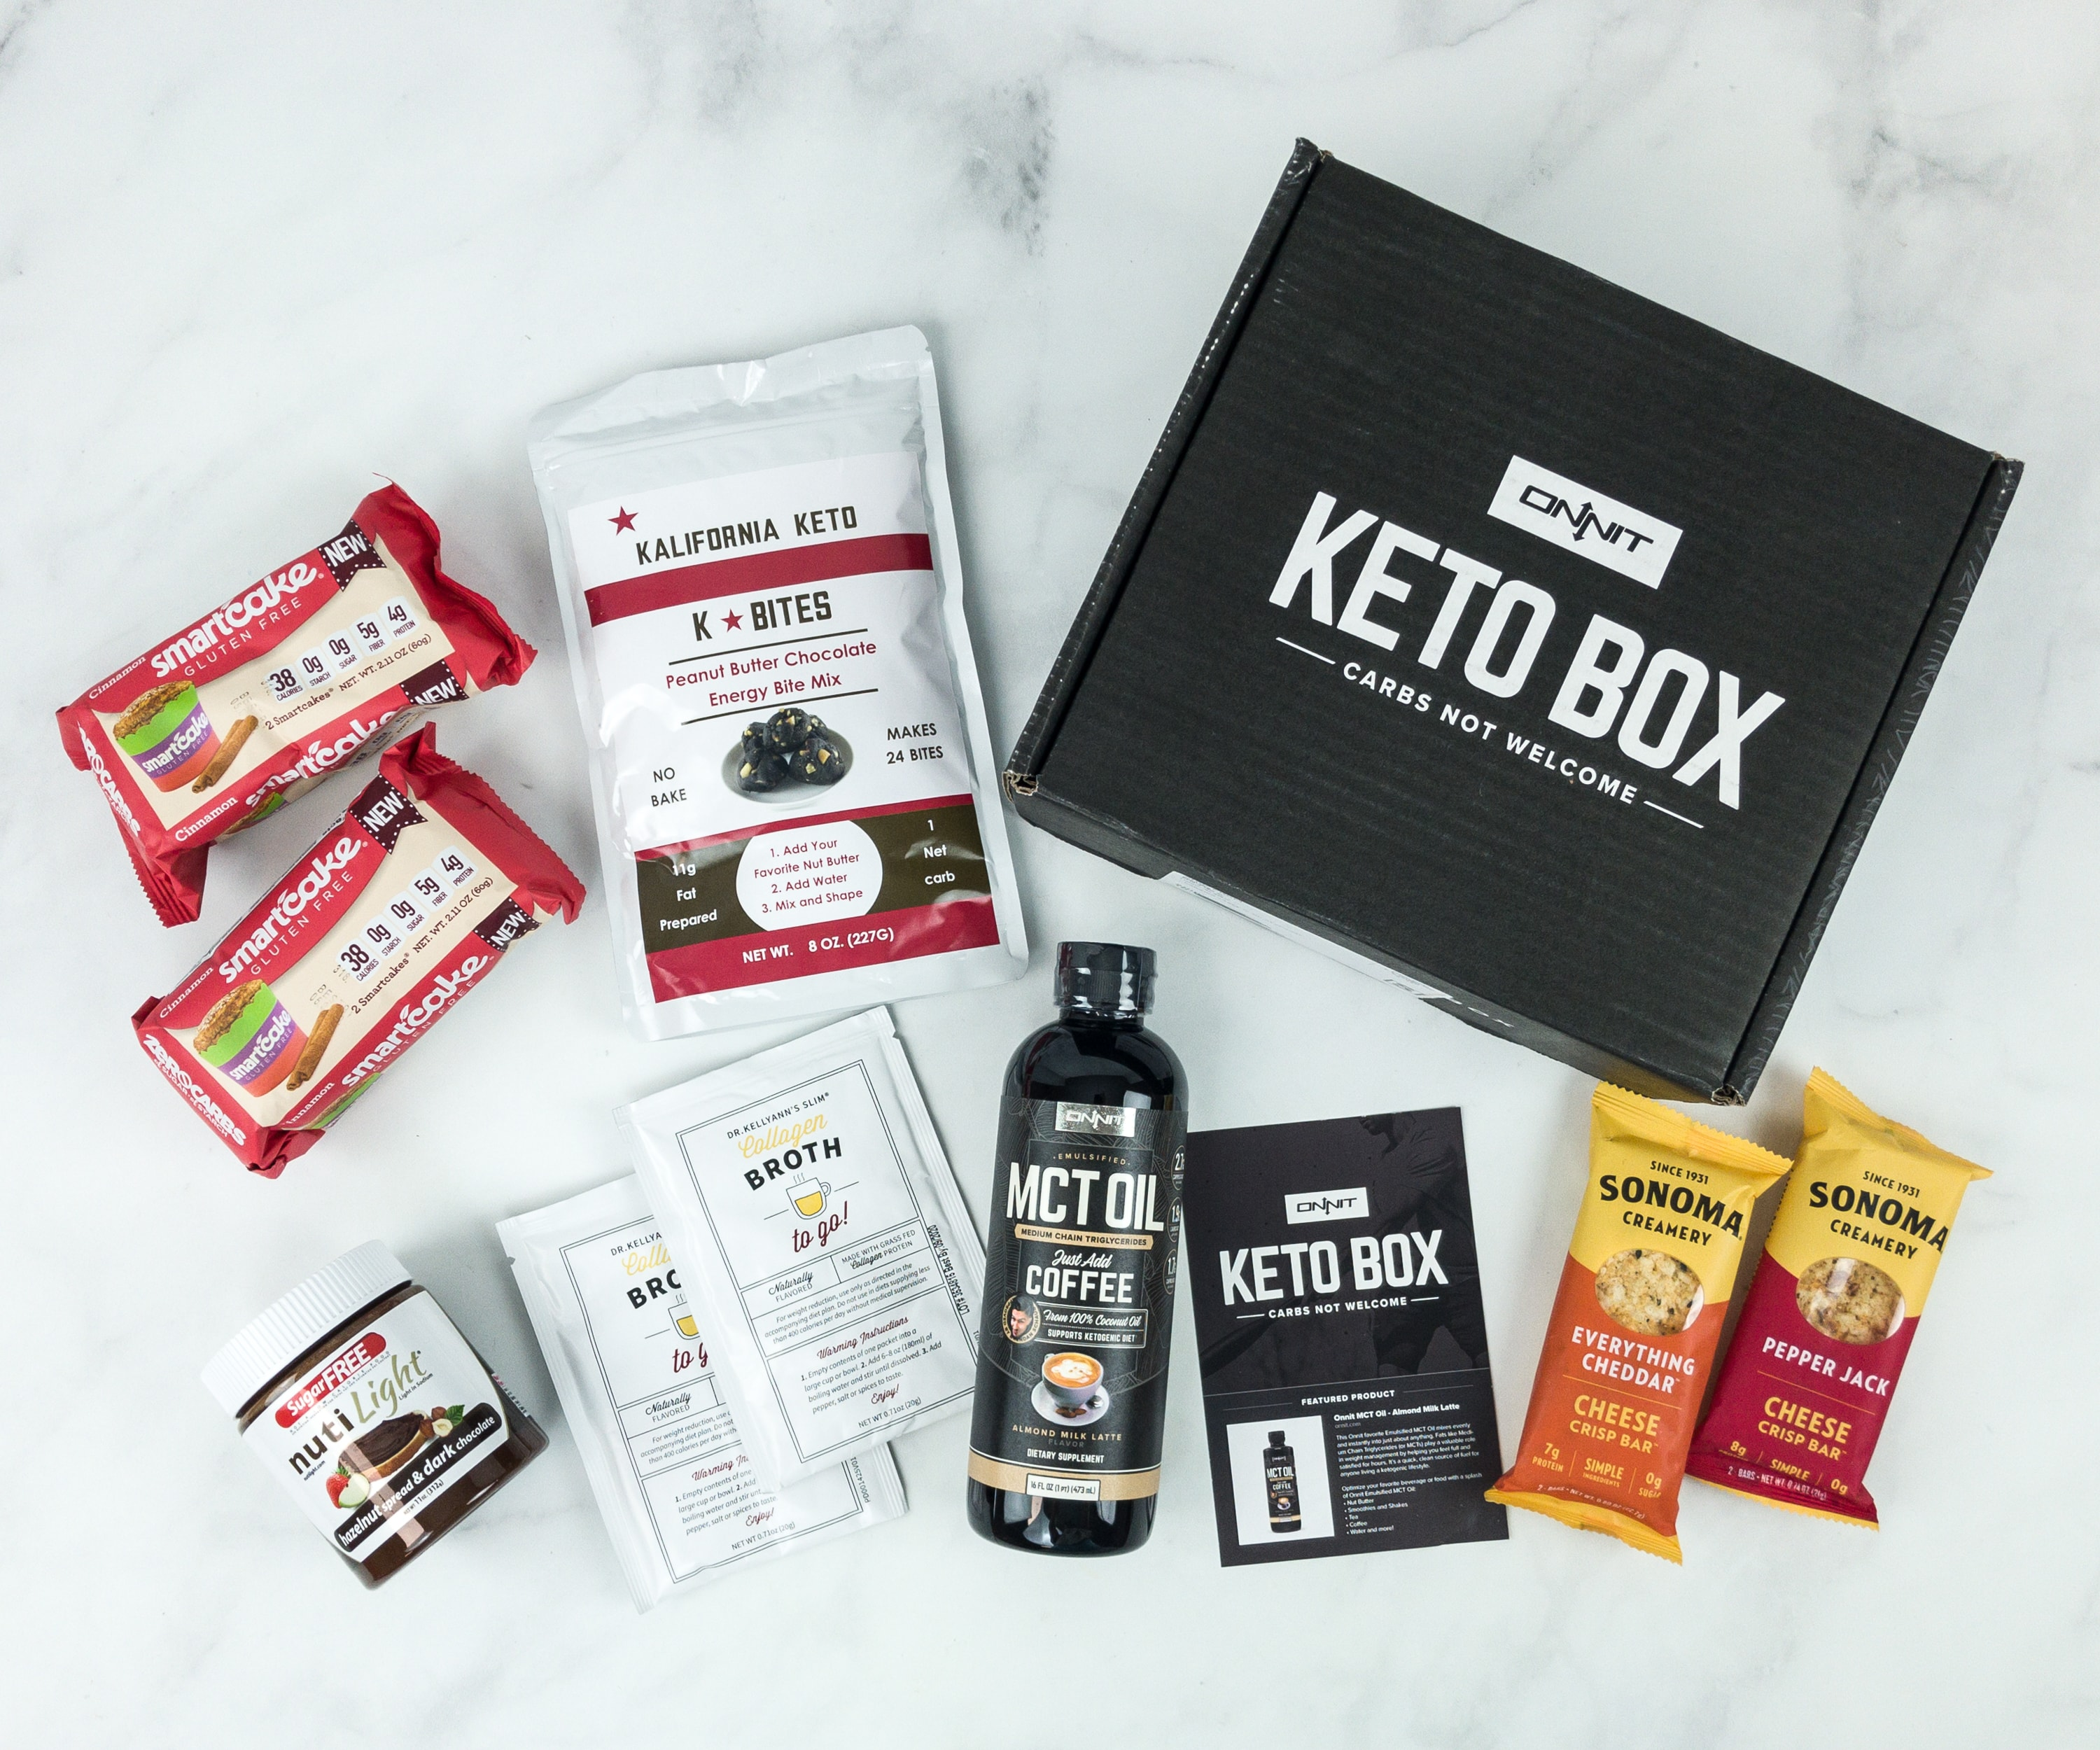 Onnit Keto Box December 2018 Subscription Box Review